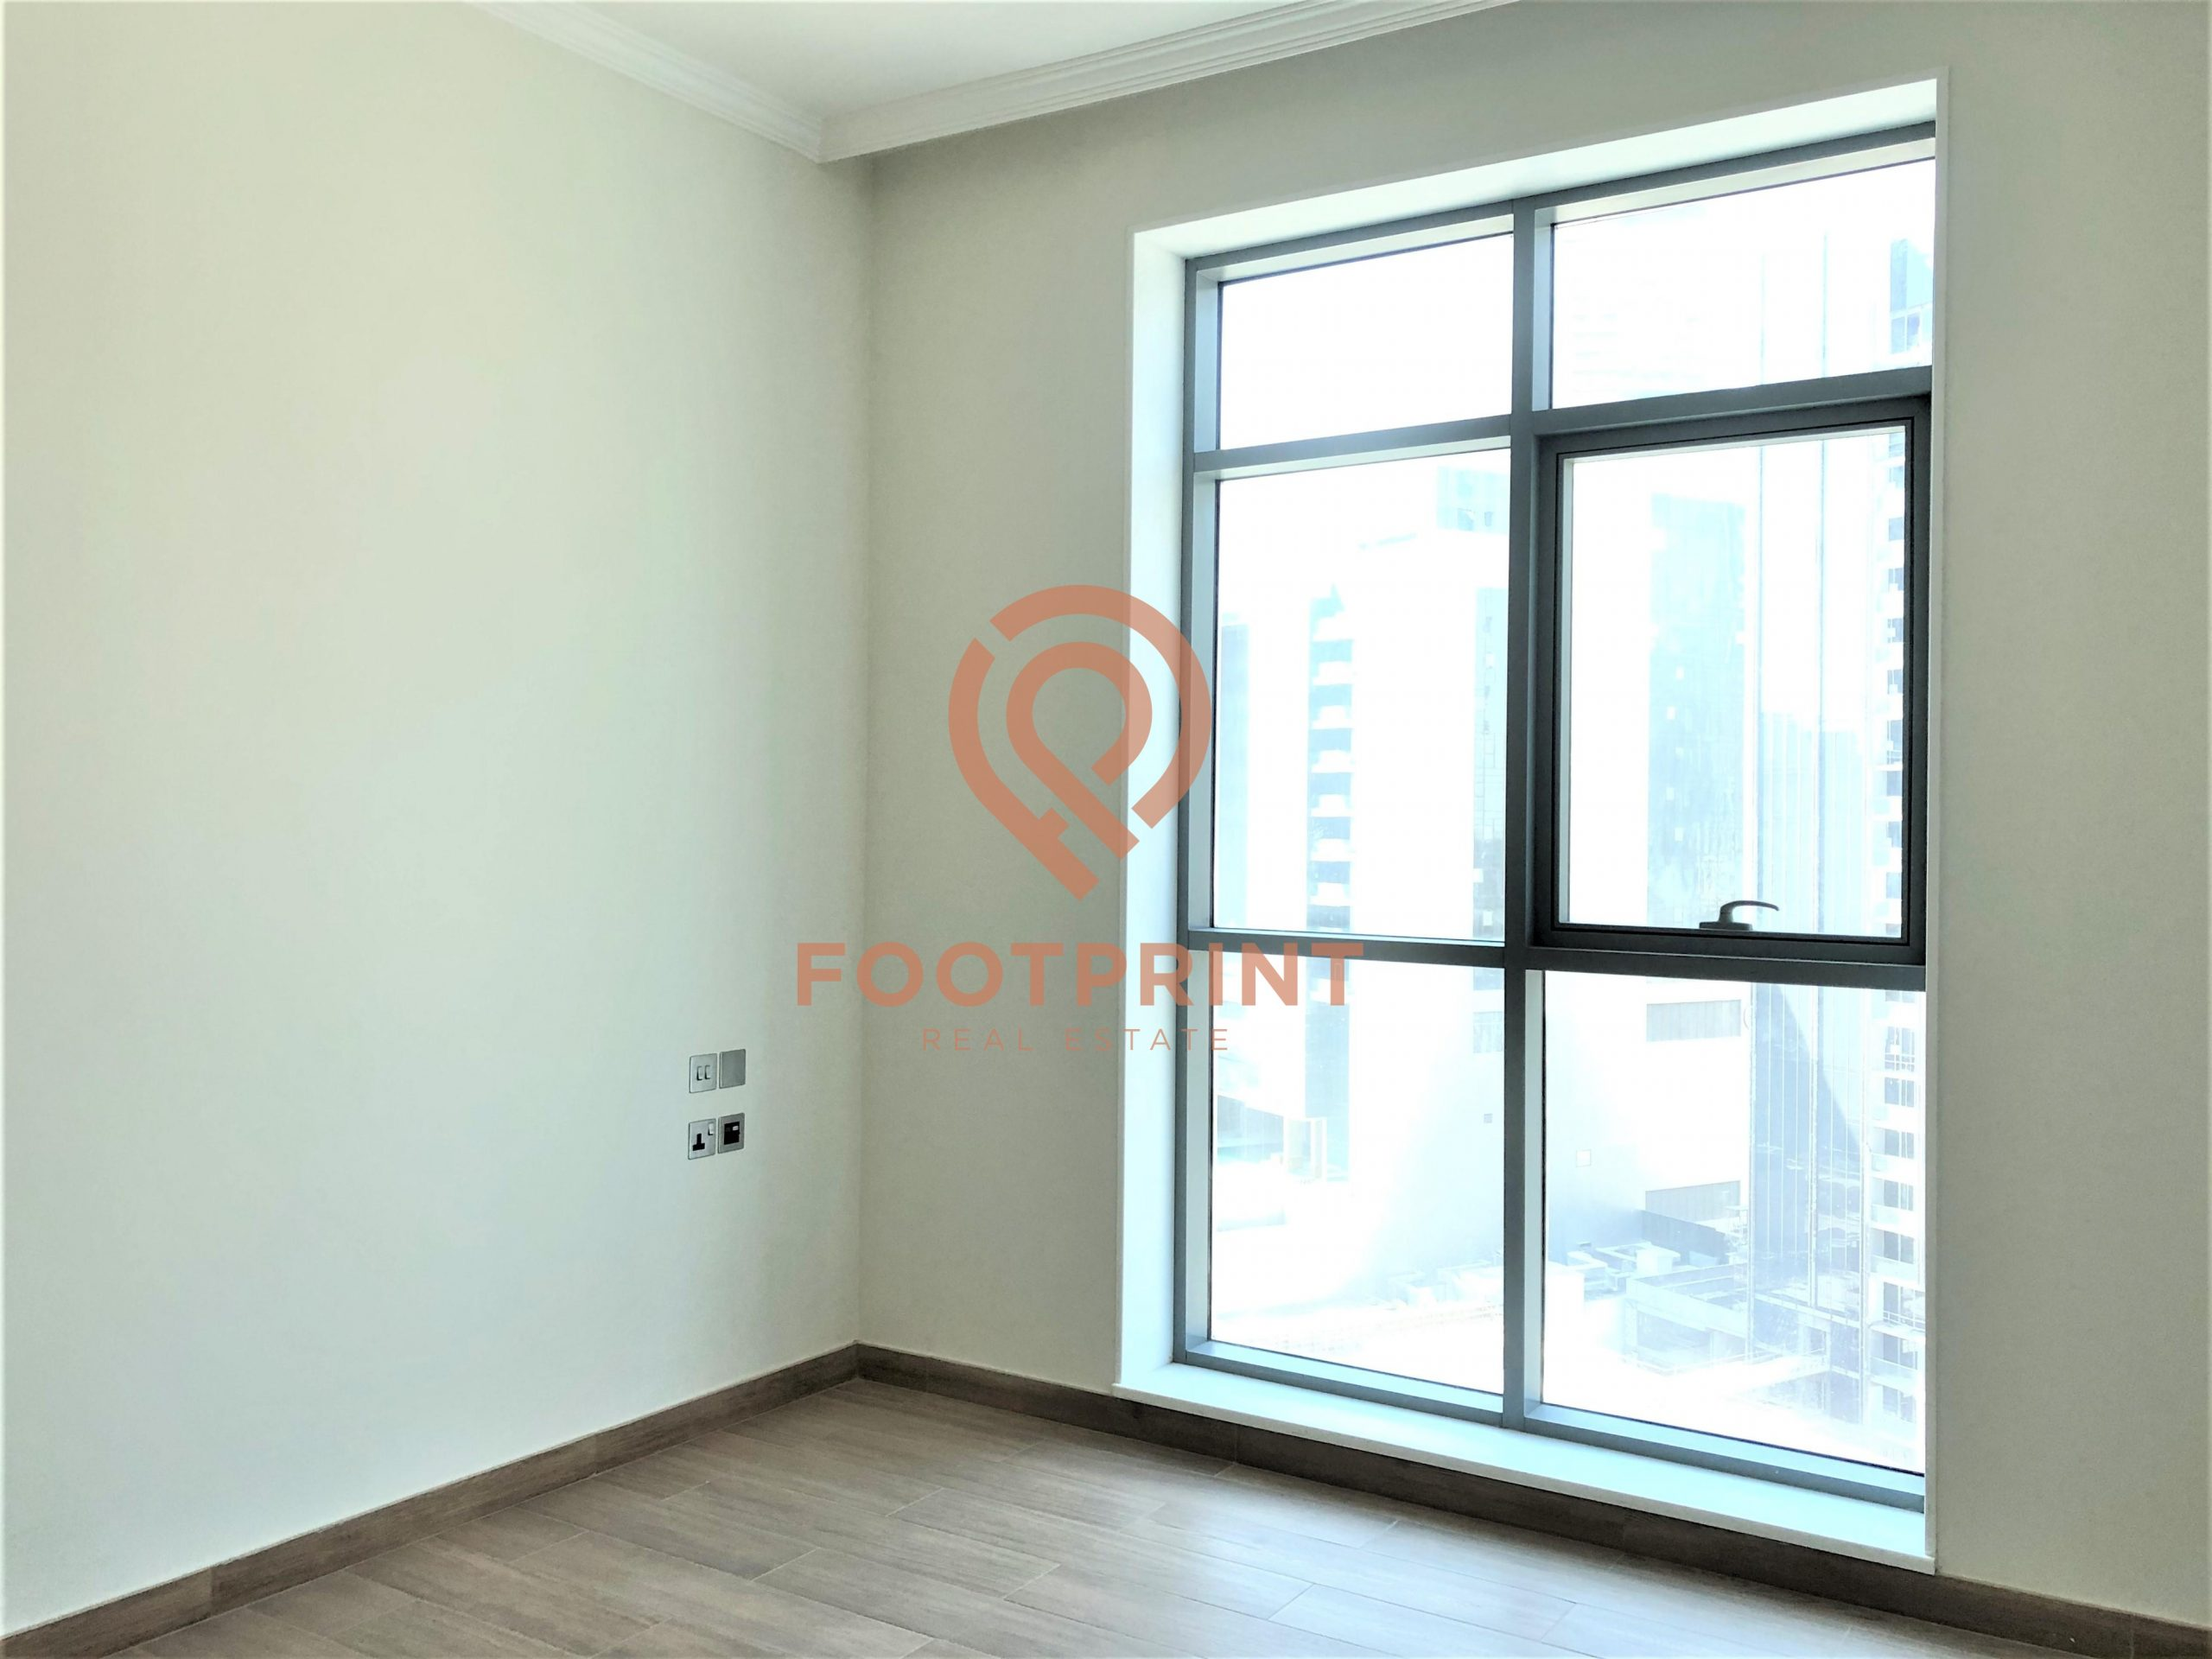 Luxurious  |2 BR Apartment with Store Room